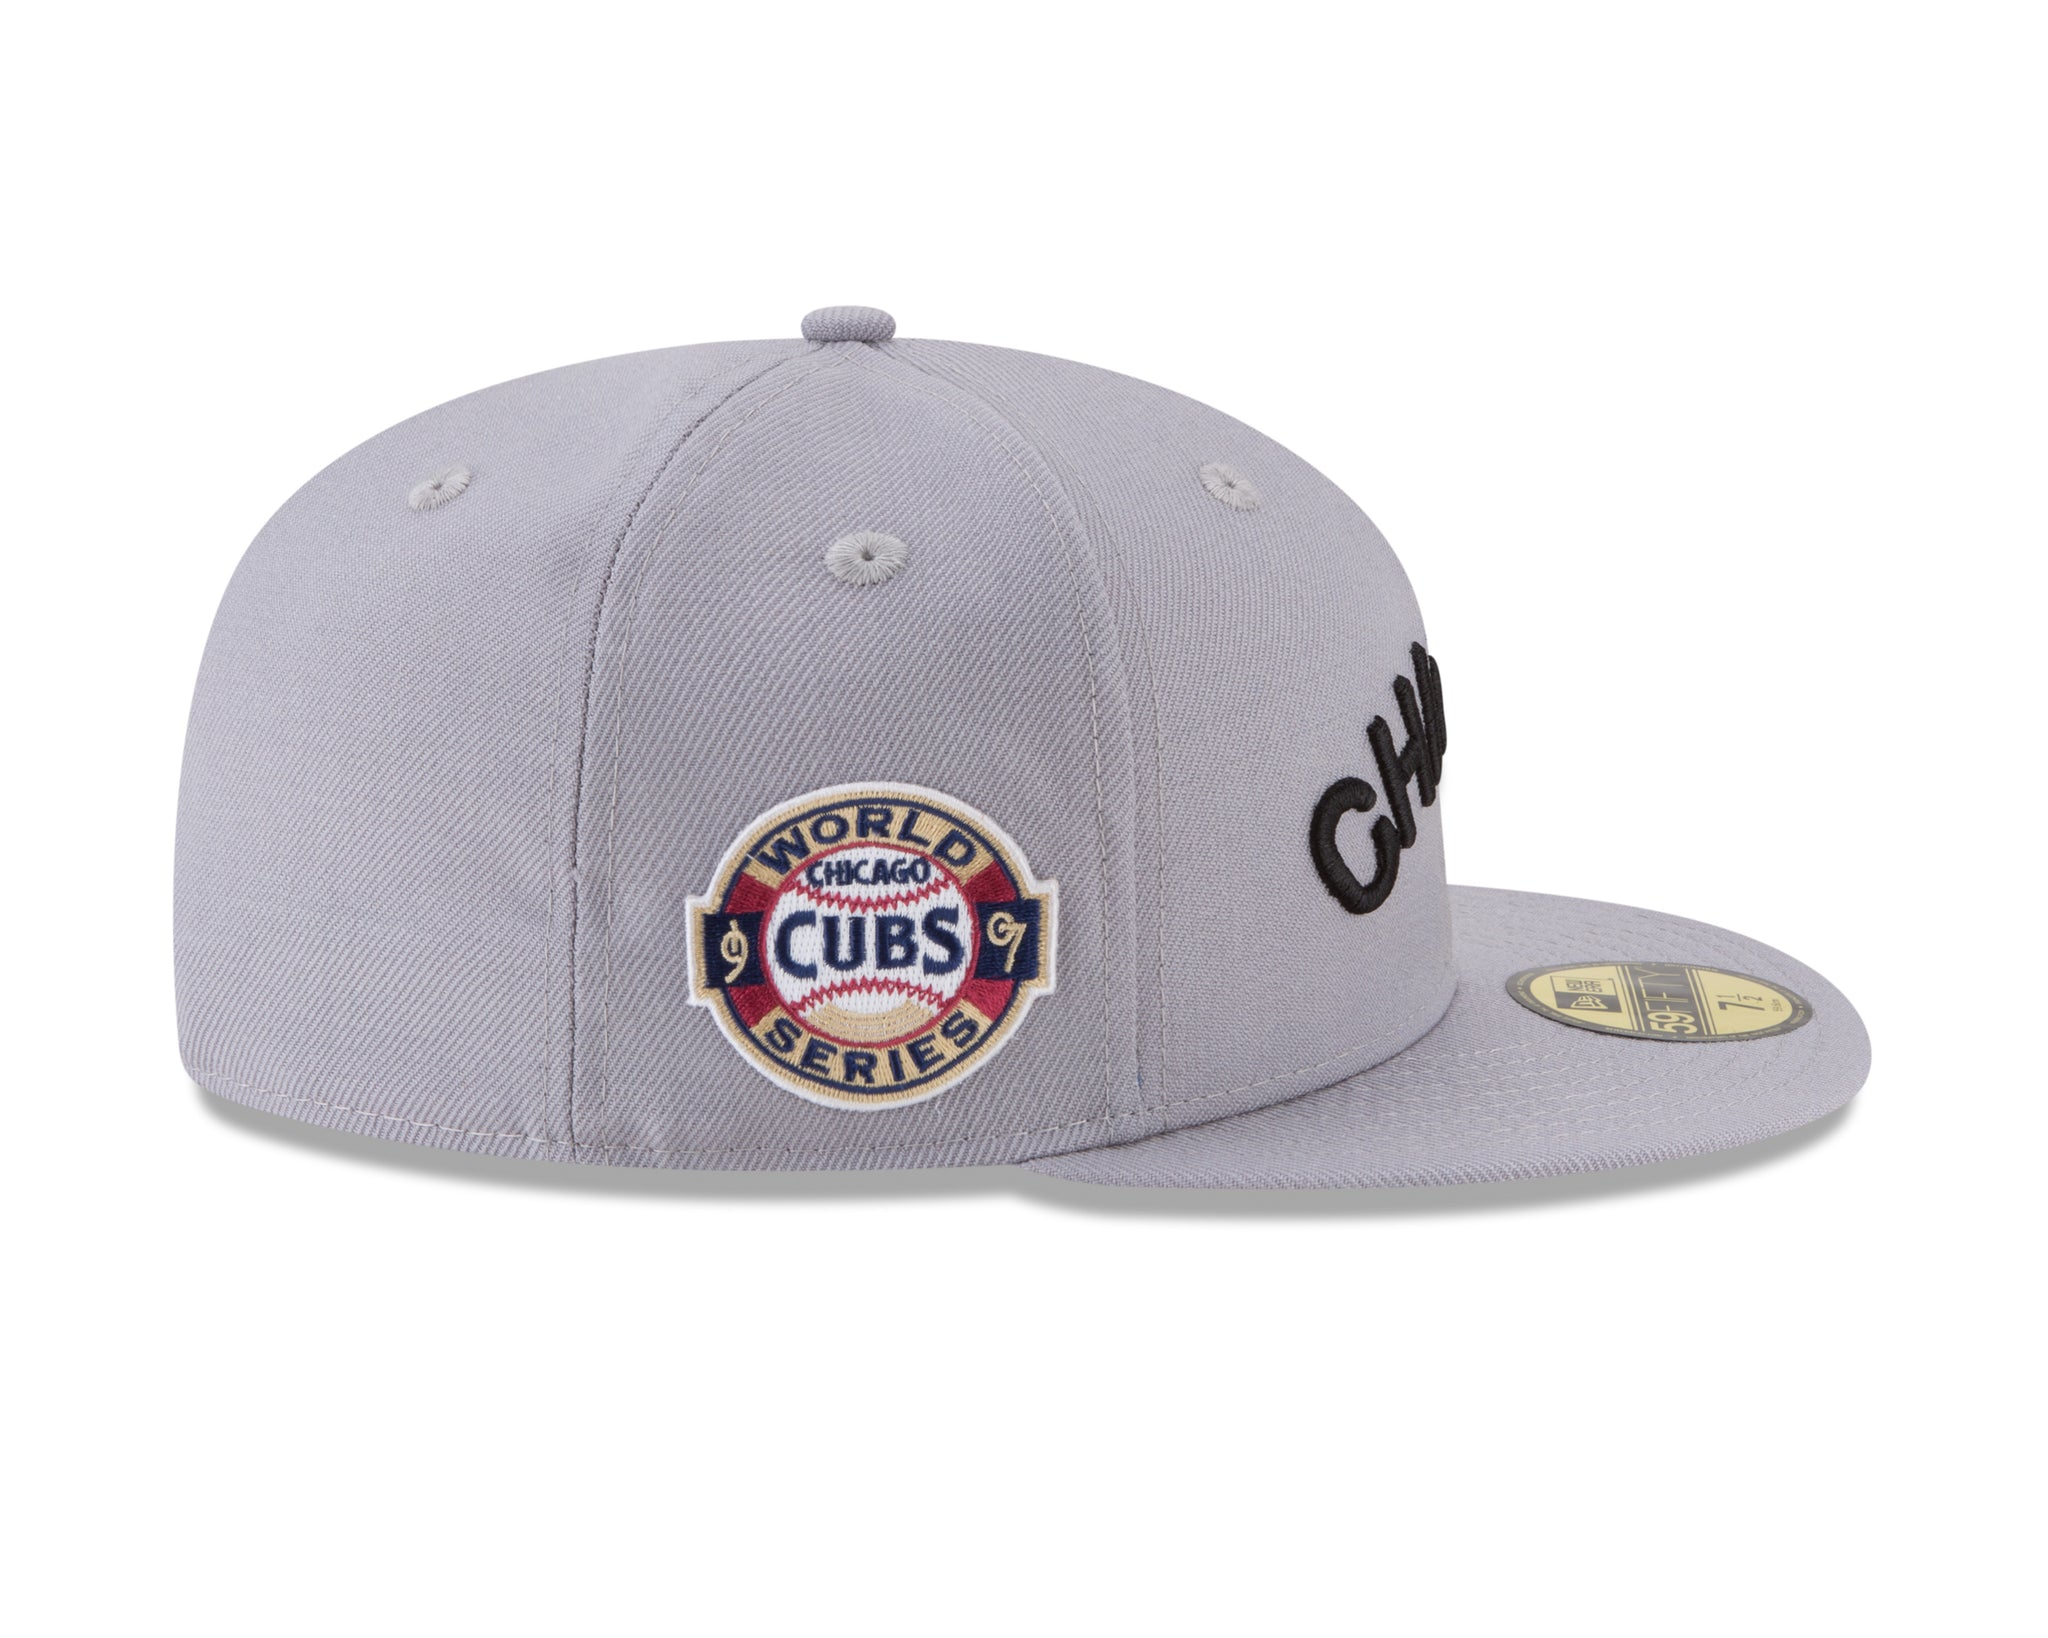 Men's Chicago Cubs 1907 World Series Side Patch 59fifty